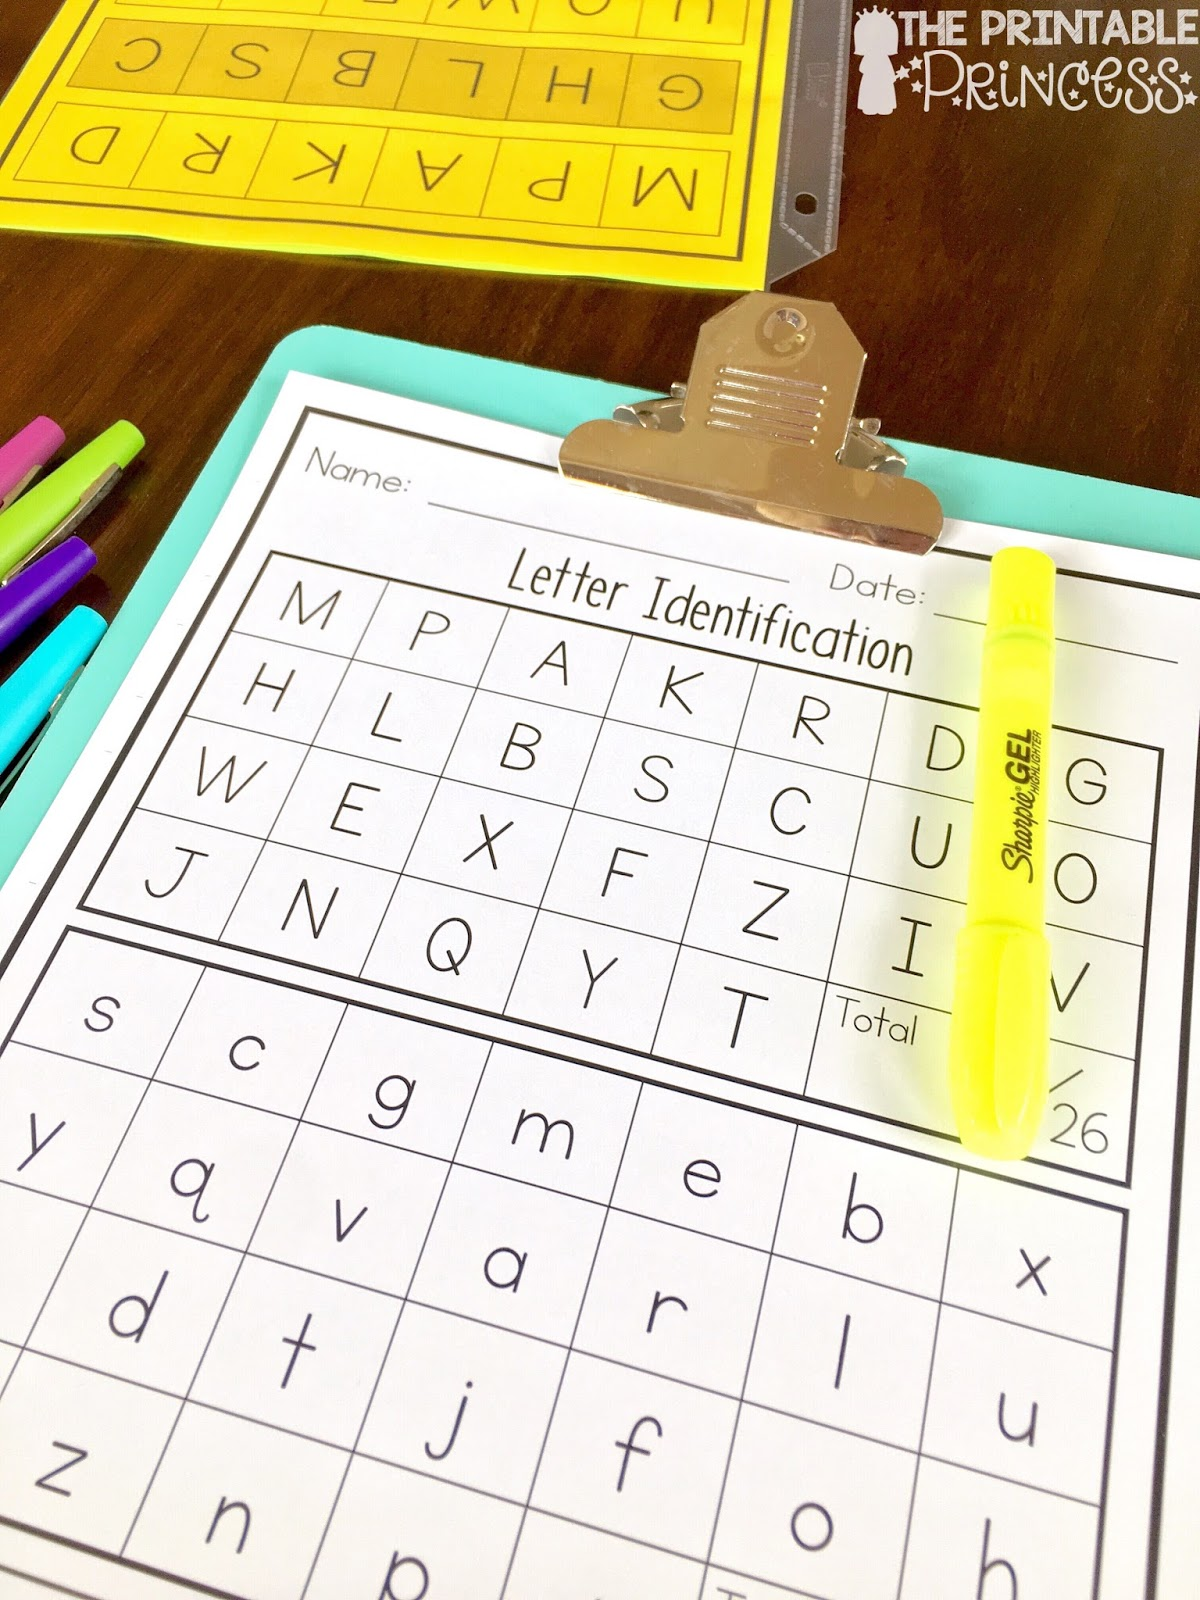 The Printable Princess Letter Recognition And Alphabet